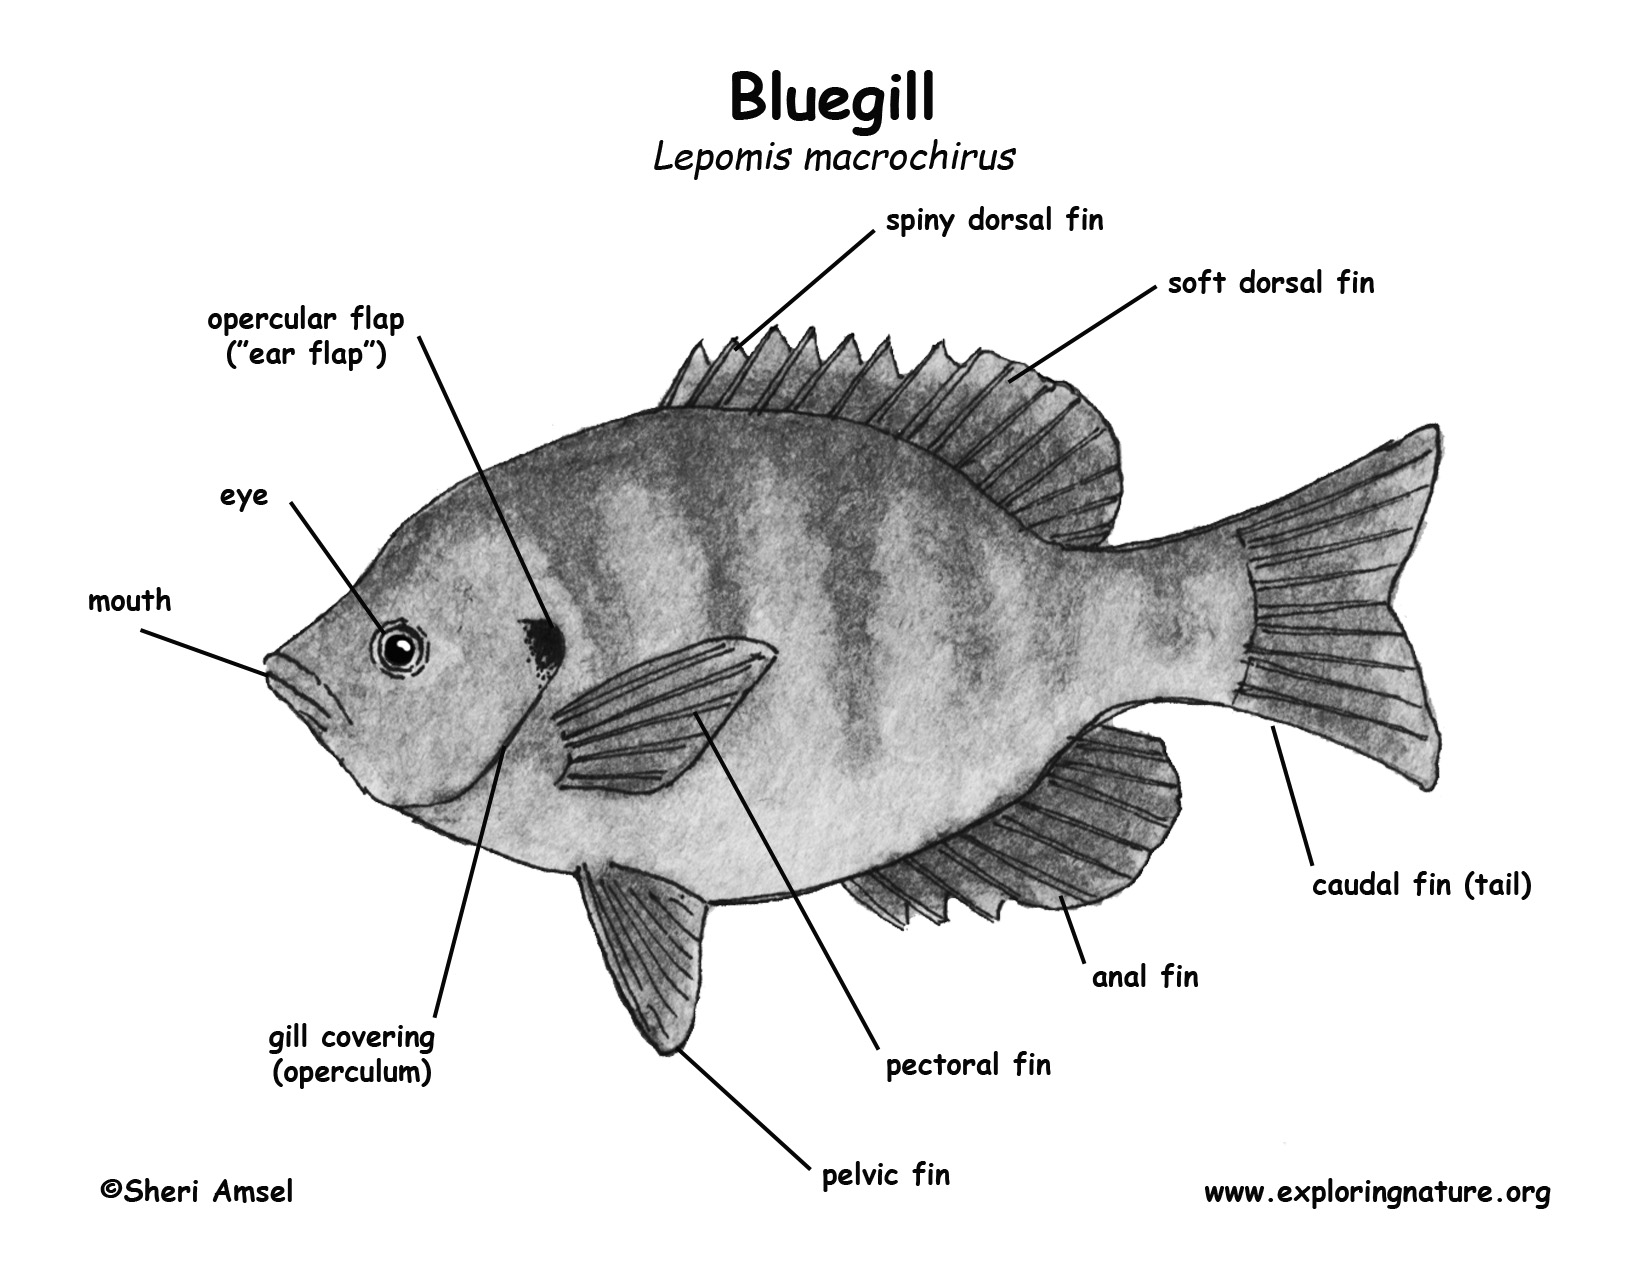 bluegill_diagram_bw.jpg